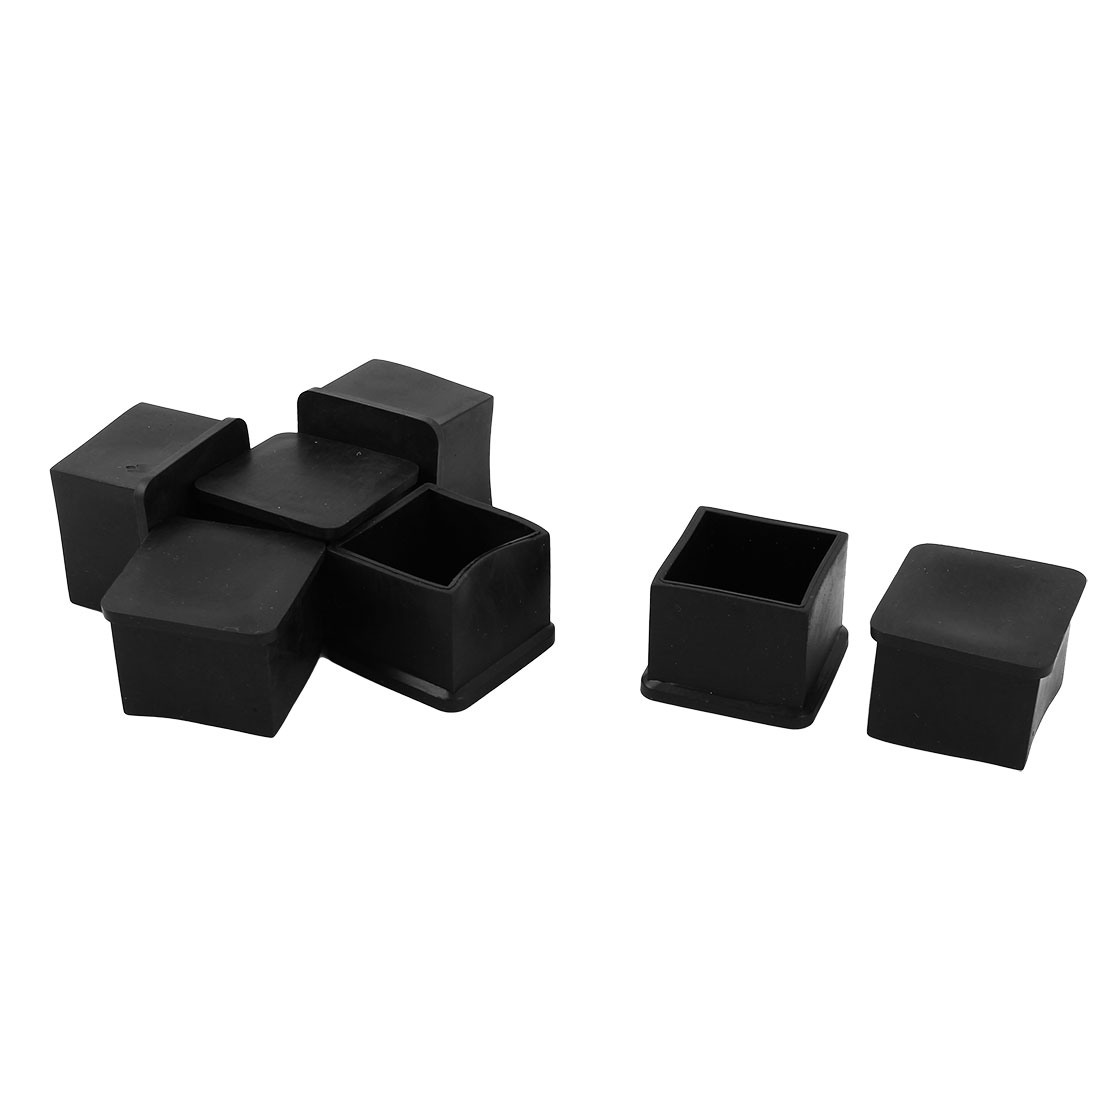 Household Rubber Furniture Foot Floor Protector Cover Black 35mm x 35mm 7 Pcs